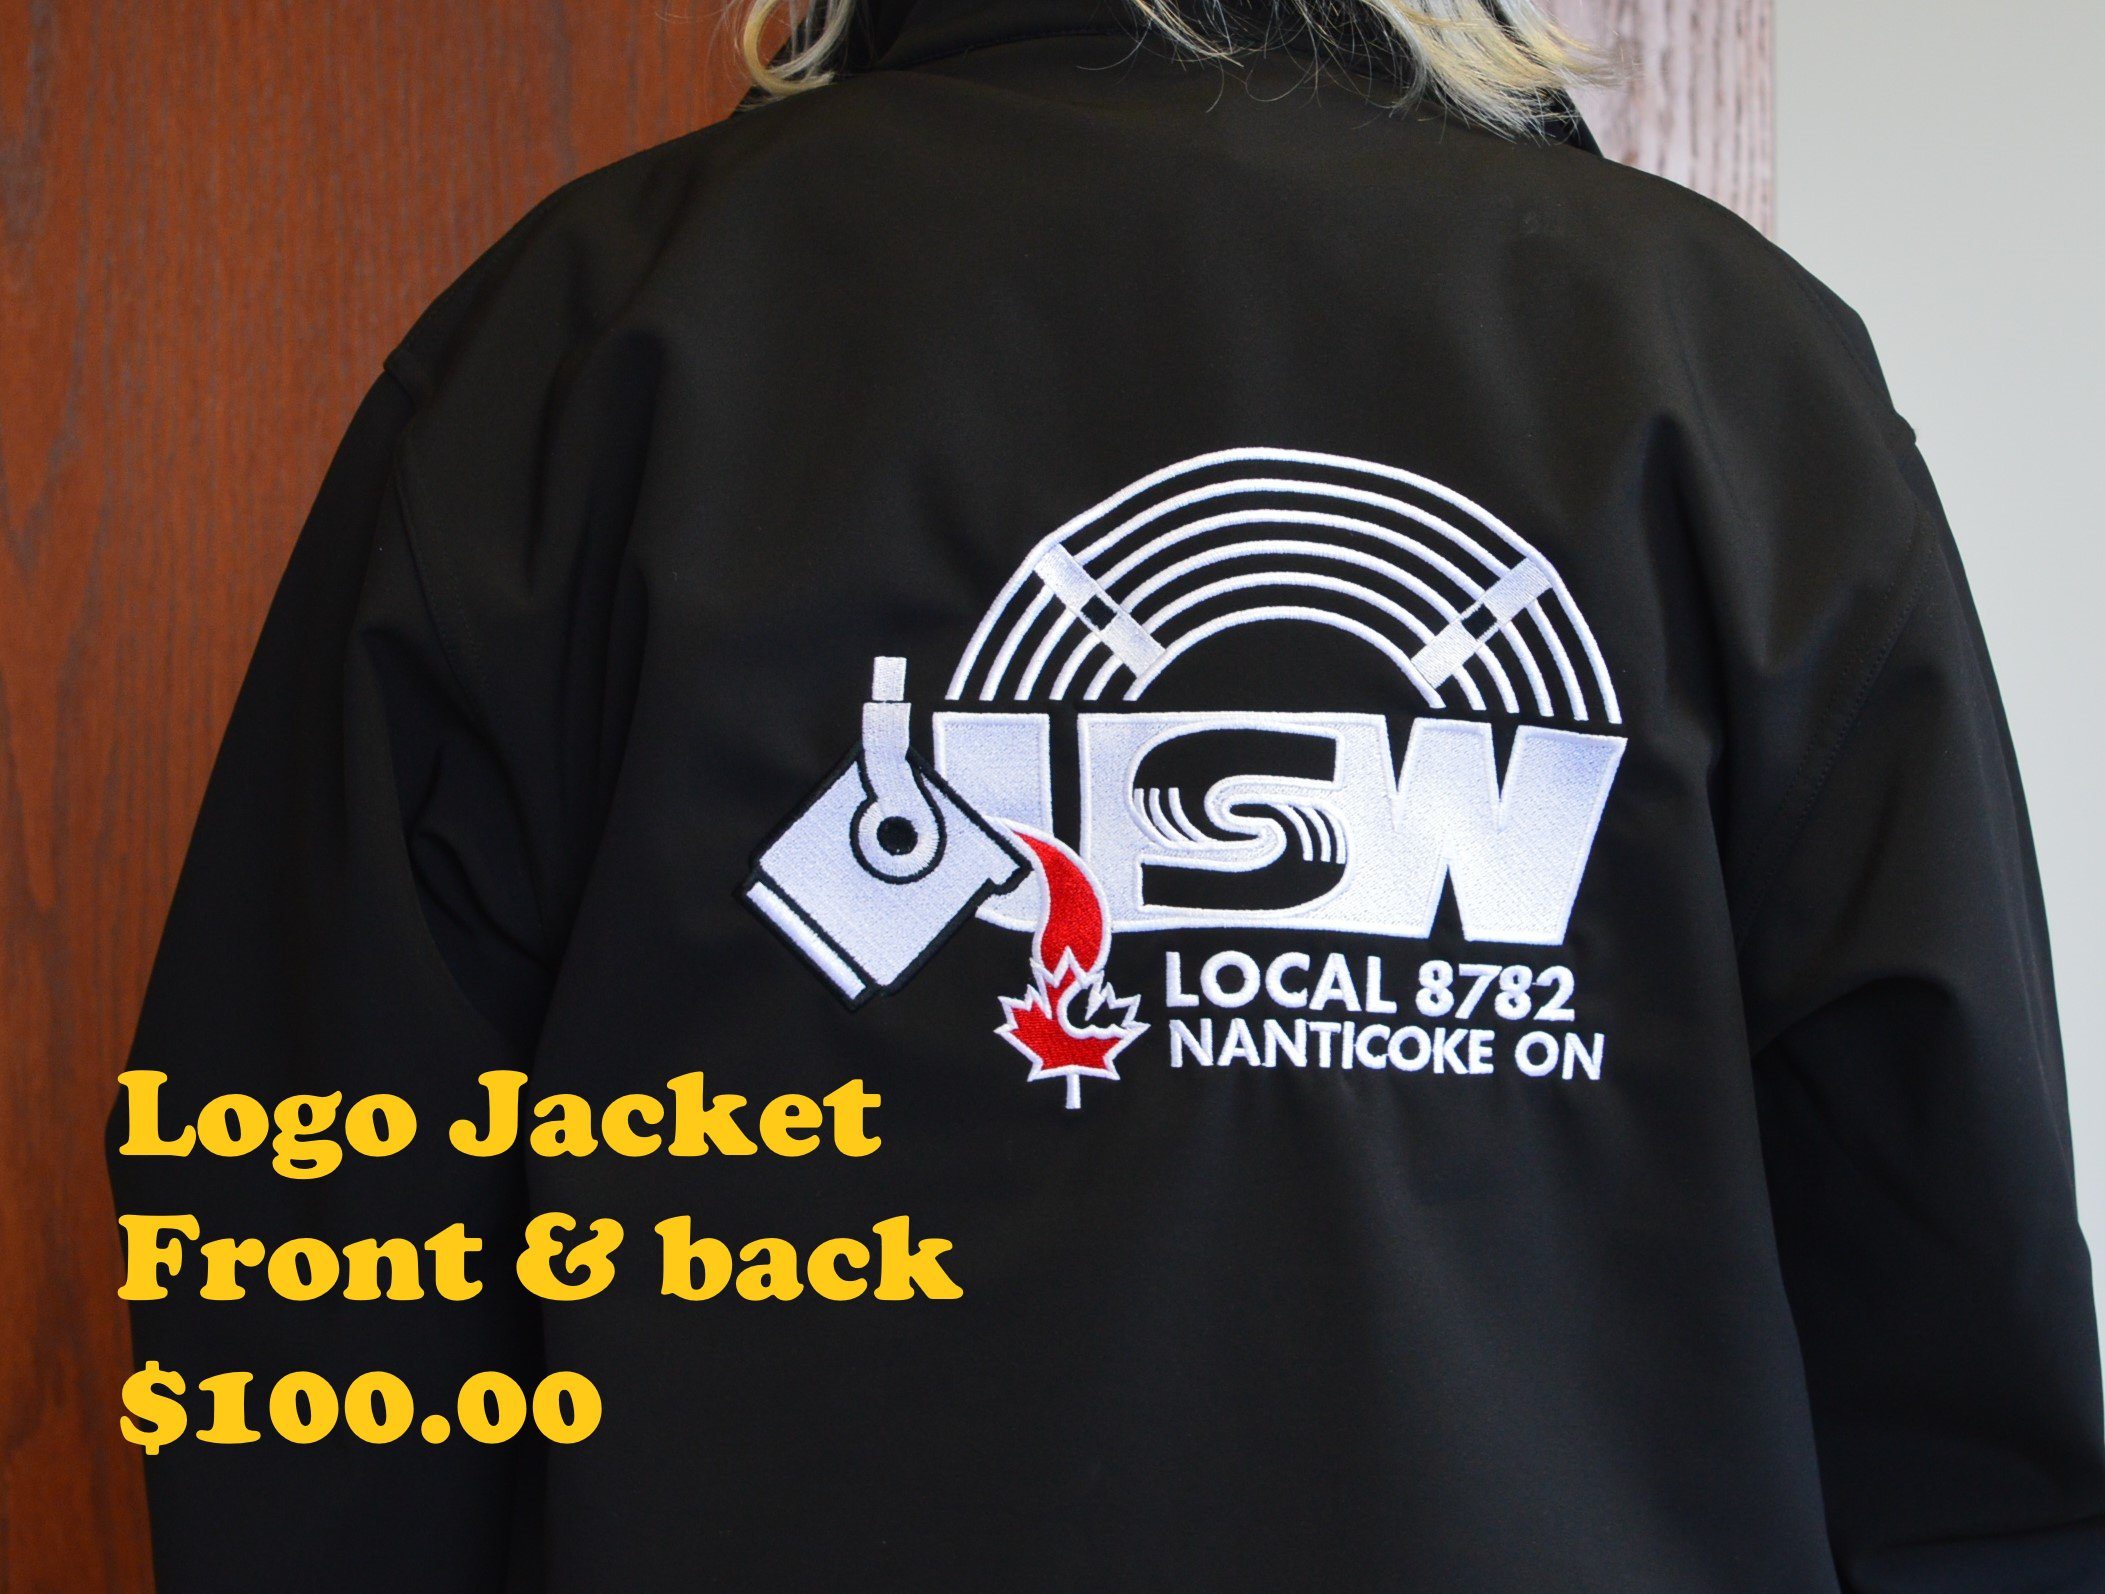 https://0901.nccdn.net/4_2/000/000/06b/a1b/Jacket-back-logo-2105x1594.jpg